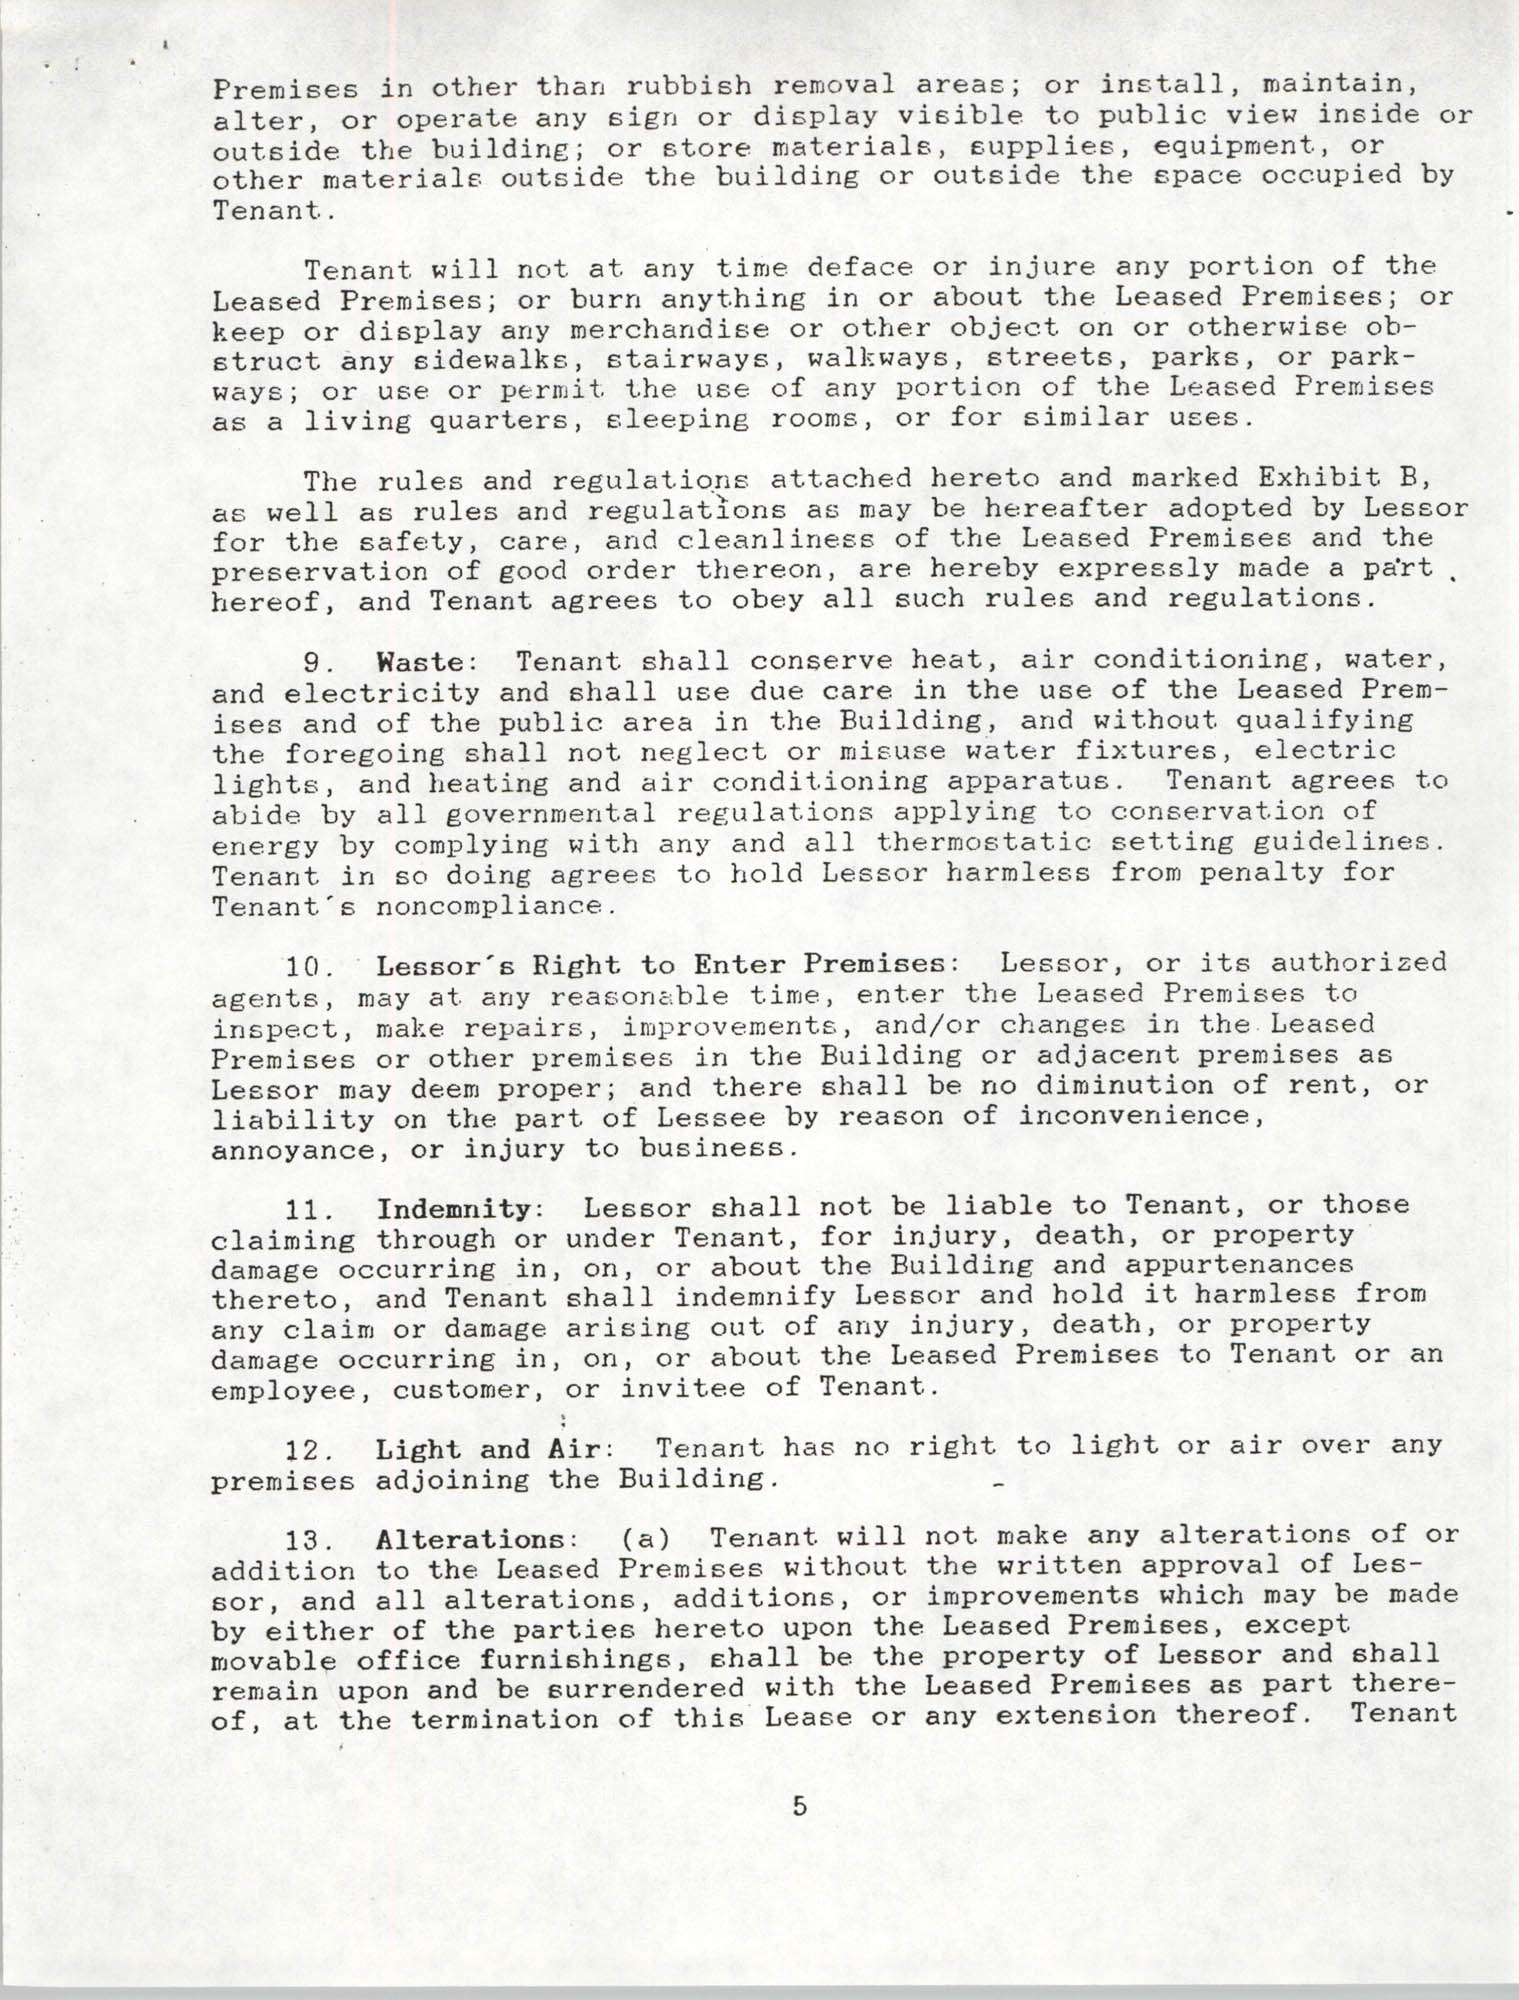 Charleston Branch of the NAACP Leasing Agreement, June 1991 to June 1994, Page 5